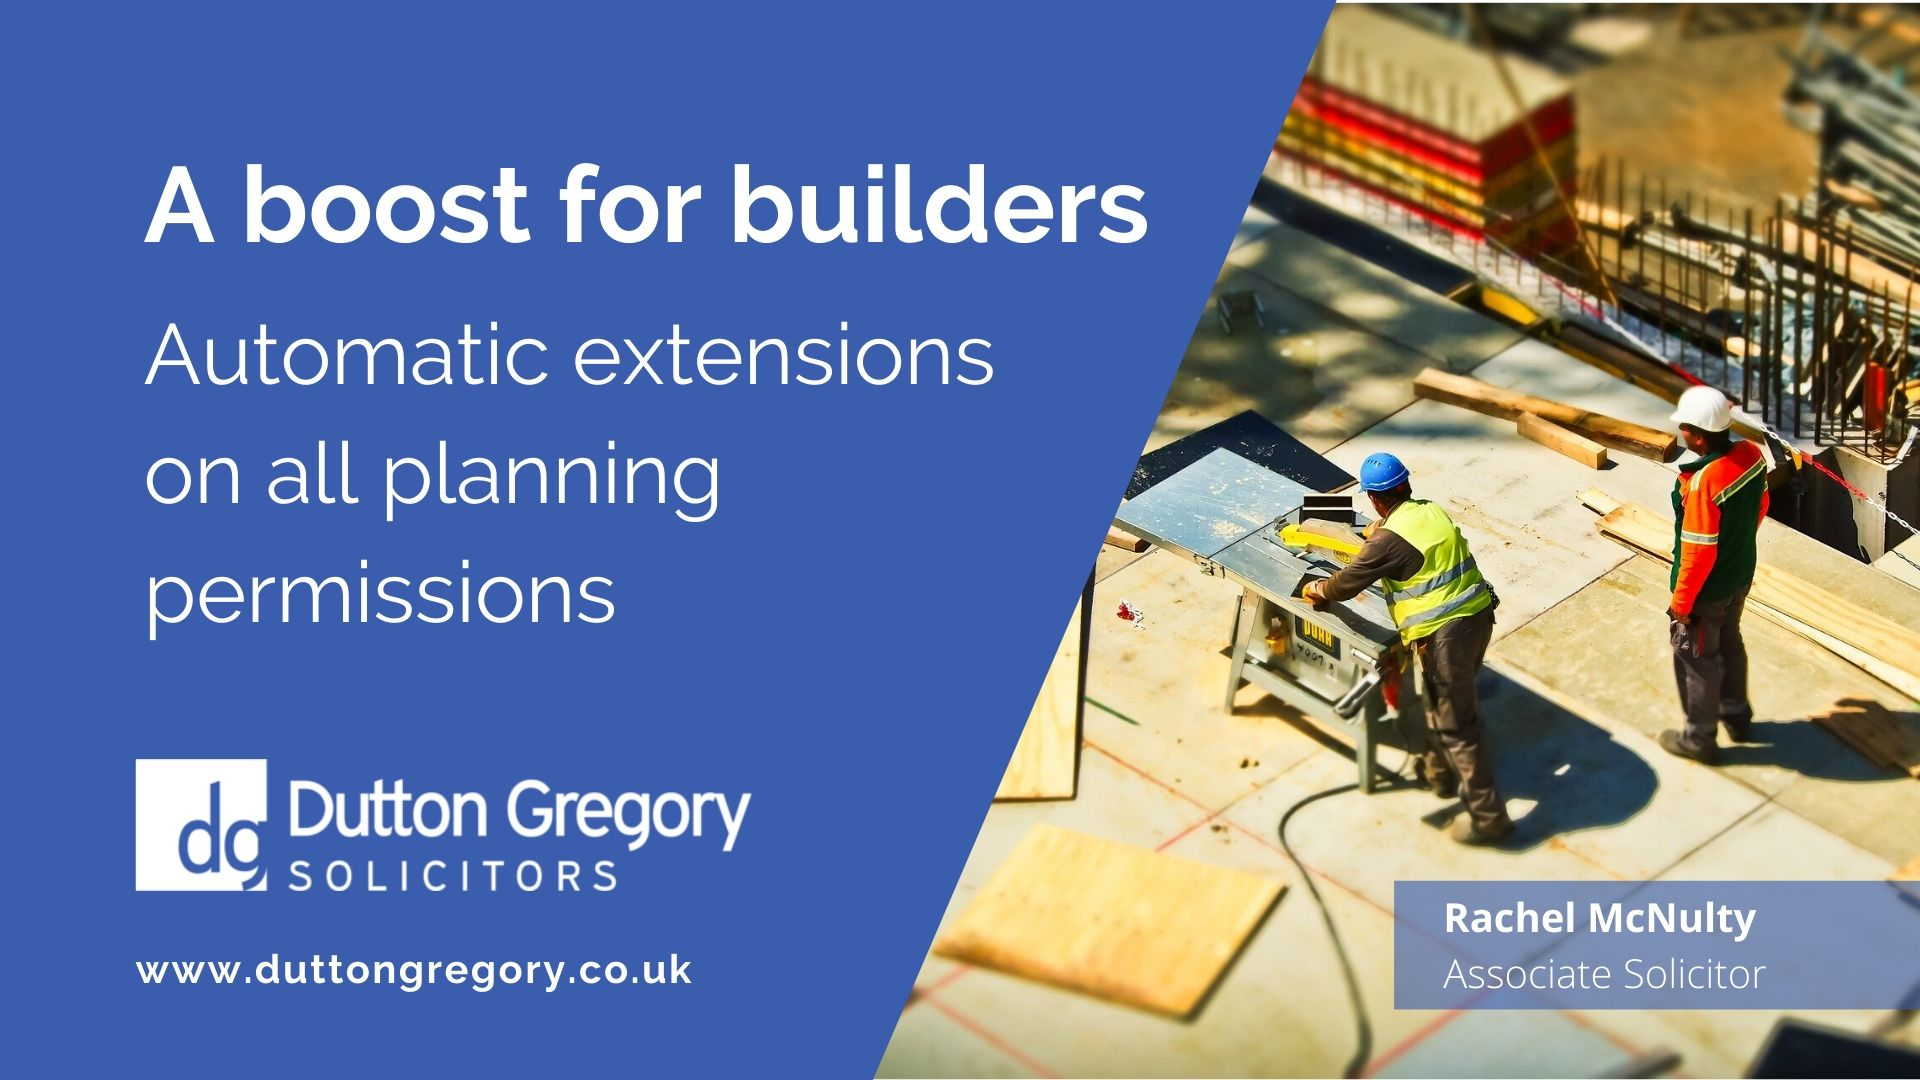 A boost for builders - automatic extensions on all planning permissions